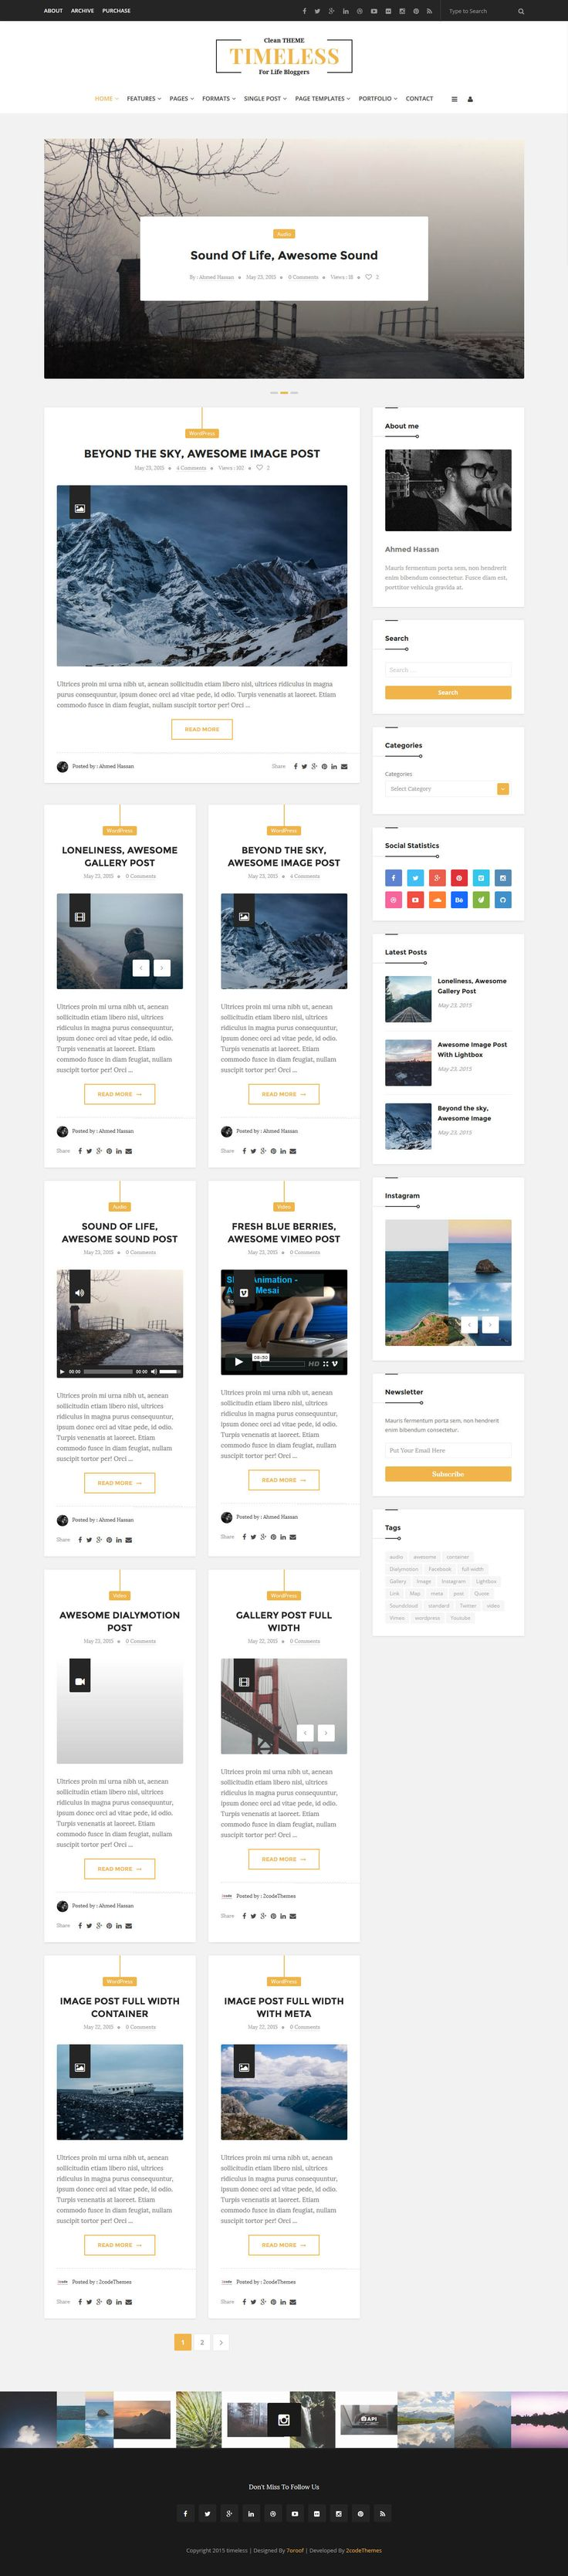 TimeLess – Clean Personal WordPress Blog Theme #website Live Preview & Download: http://themeforest.net/item/timeless-clean-personal-wordpress-blog-theme/11620699?ref=ksioks